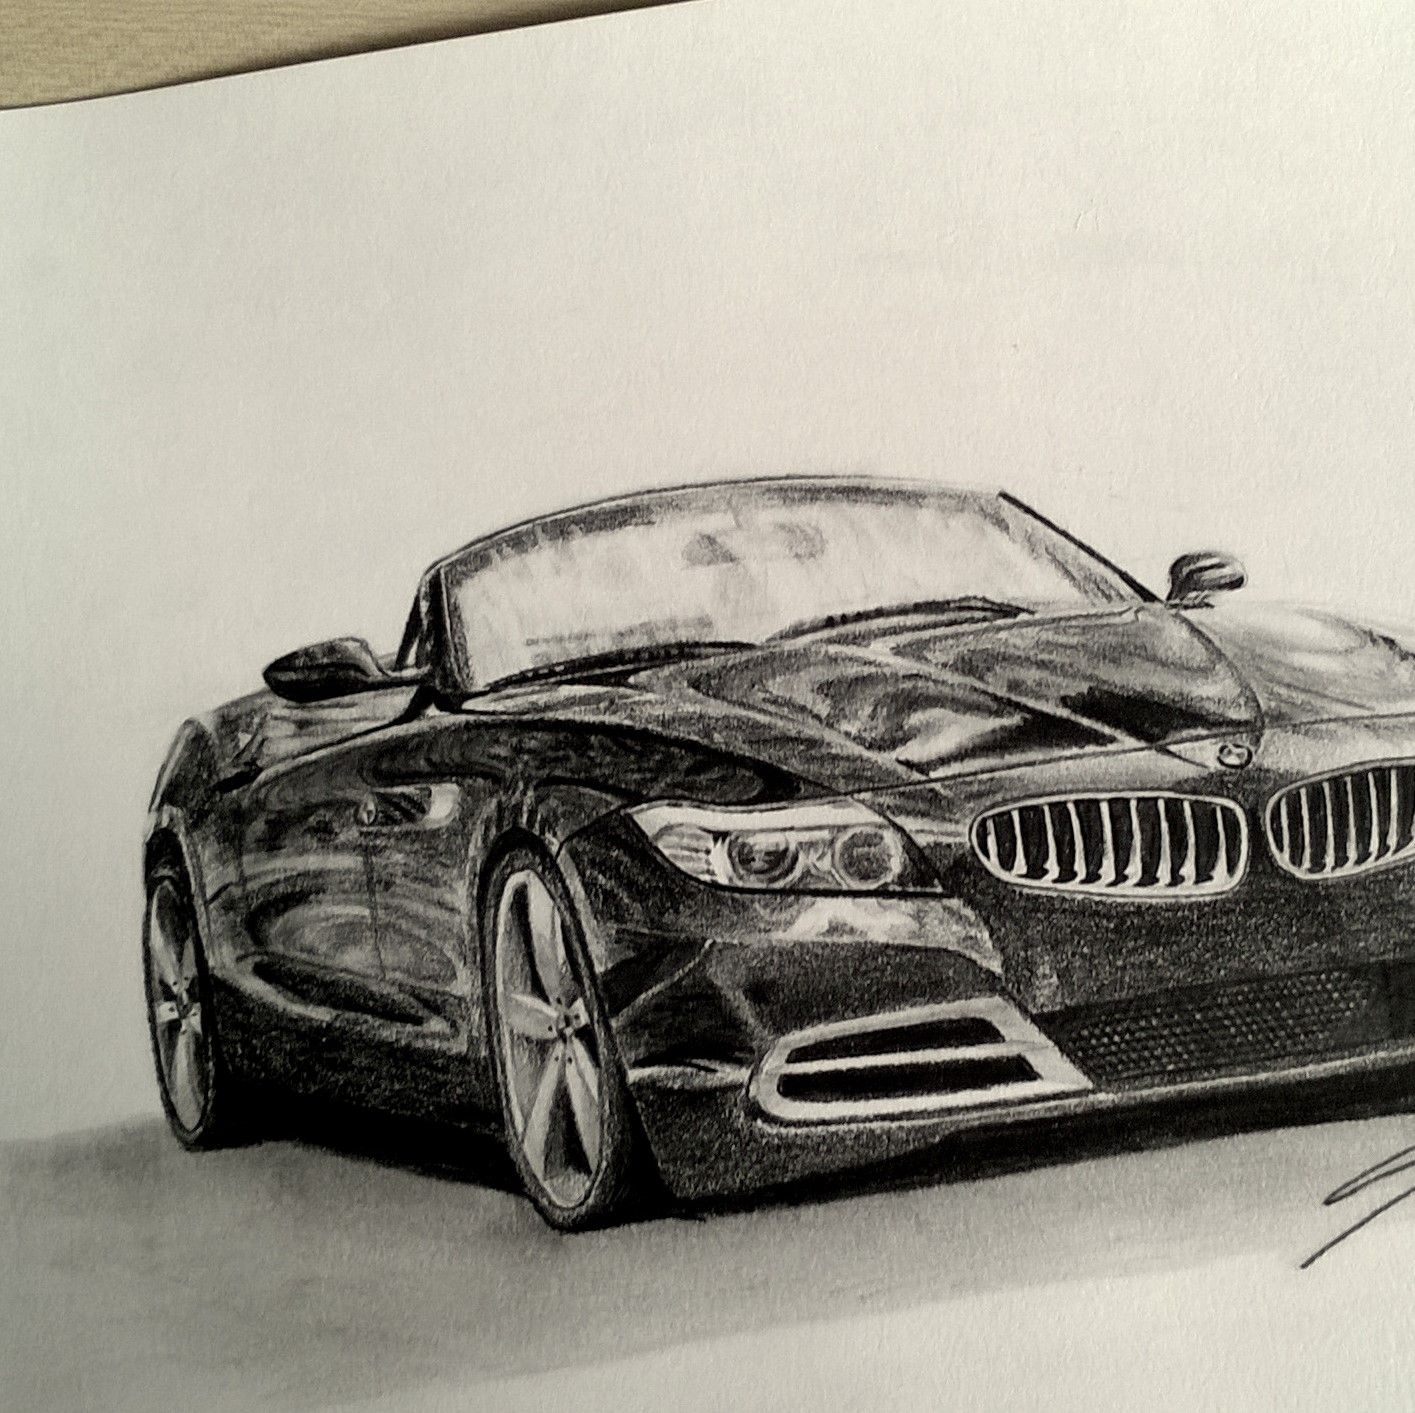 Car Drawing From Photo Personalized Car Sketch Illustration Etsy In 2020 Car Drawings Car Artwork Car Personalization